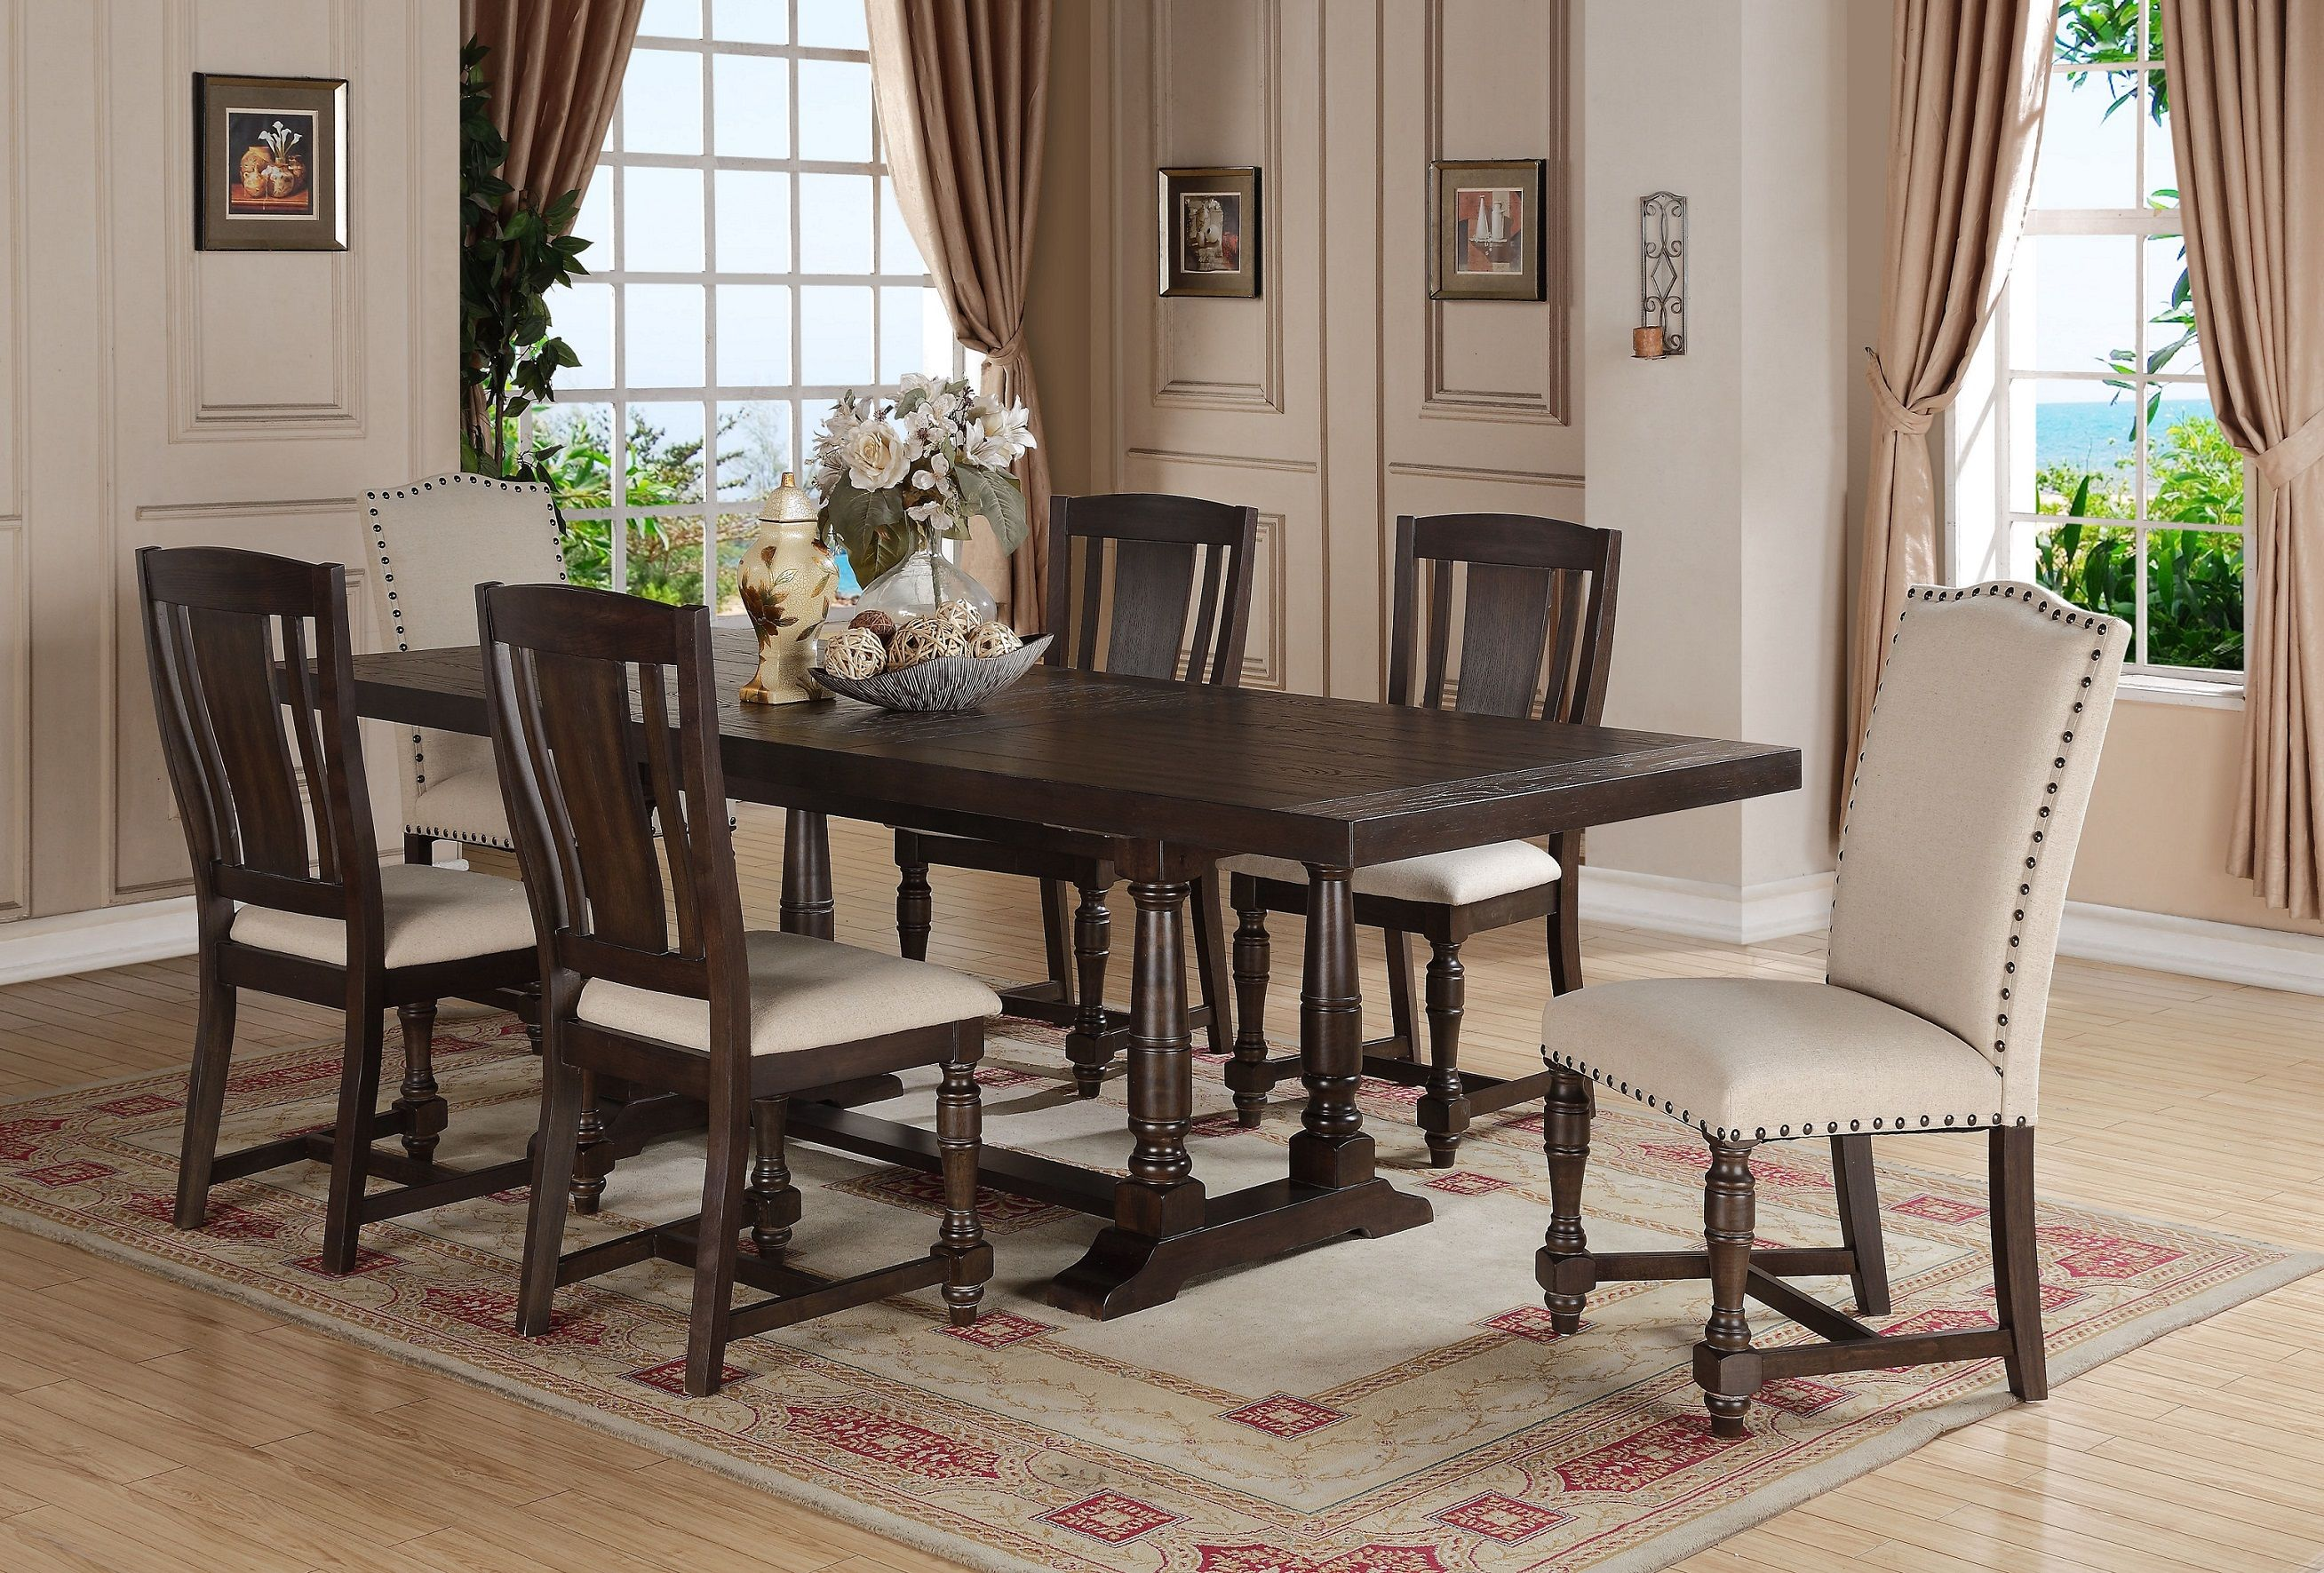 Xcalibur Trestle Table by Winners Only at